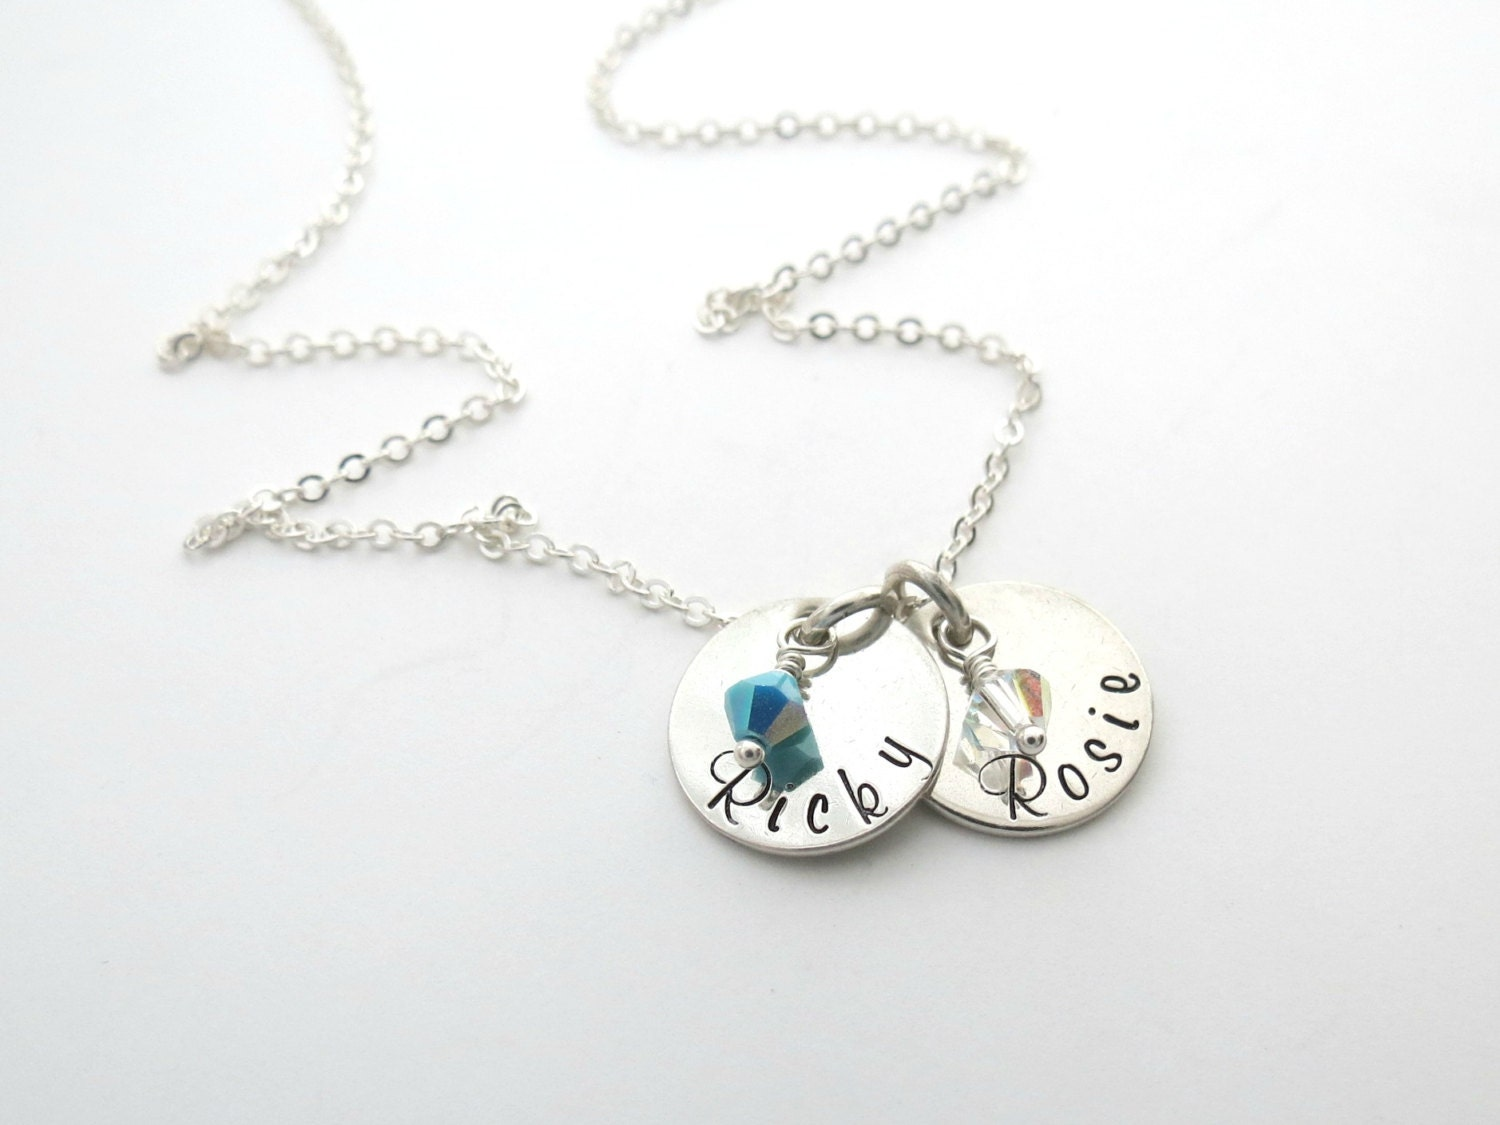 personalized necklace birthstones jewelry kids name. Black Bedroom Furniture Sets. Home Design Ideas